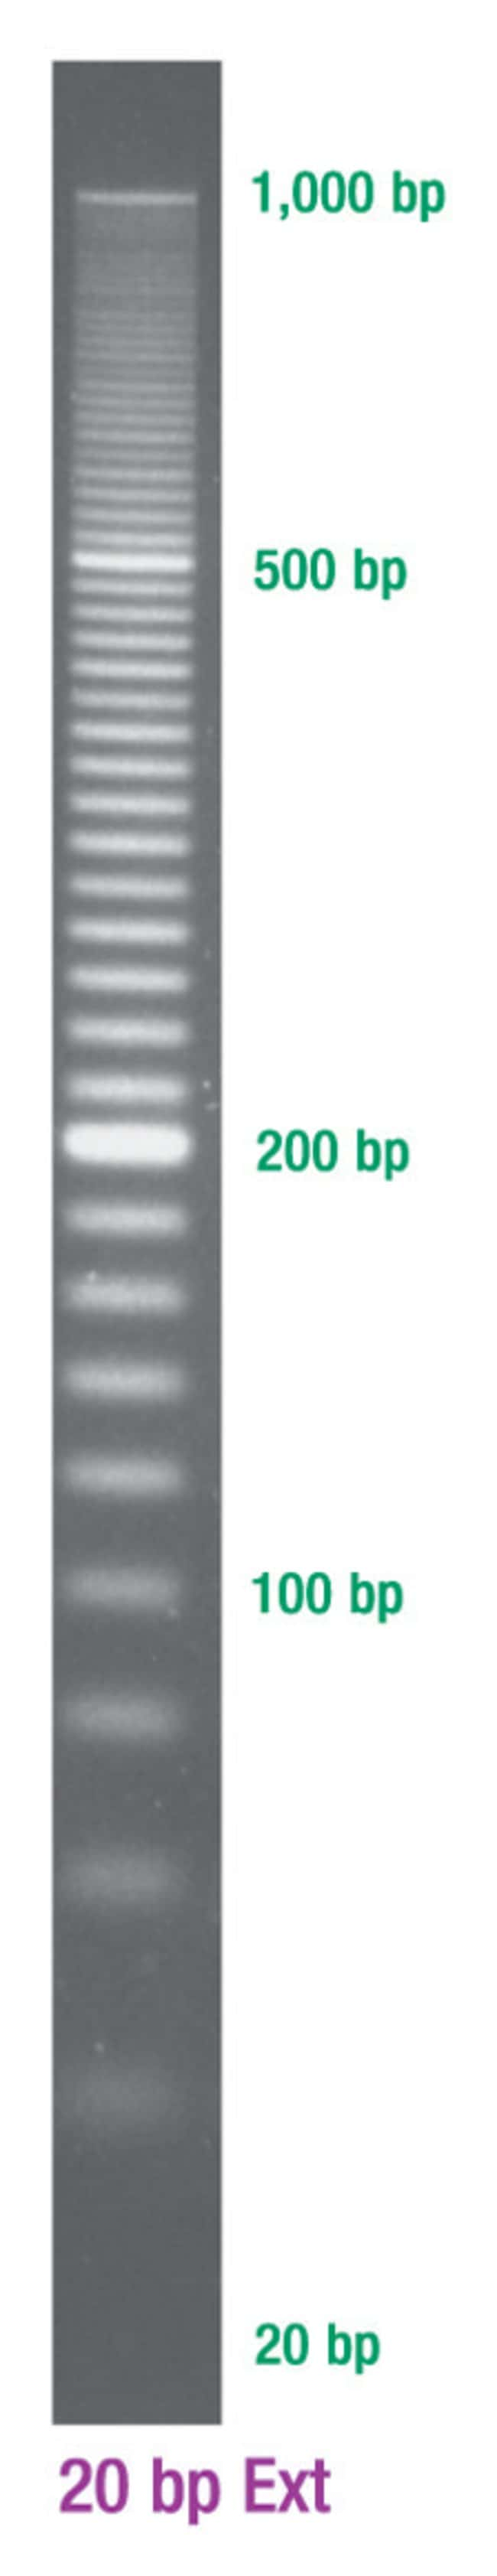 Lonza SimplyLoad DNA Ladders:Life Sciences:Biochemicals and Reagents